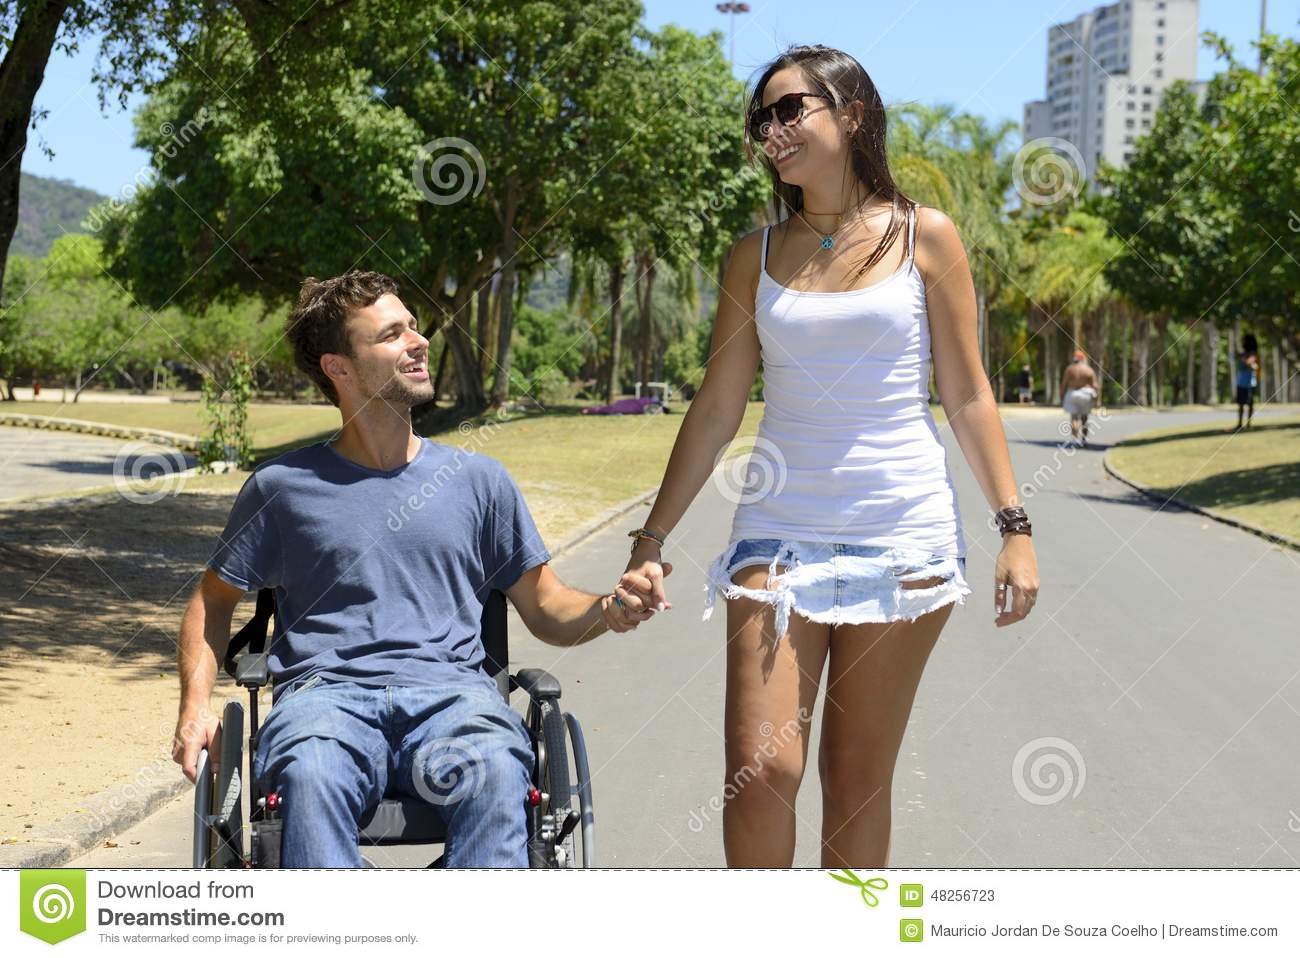 The Challenges of Dating a Man in a Wheelchair